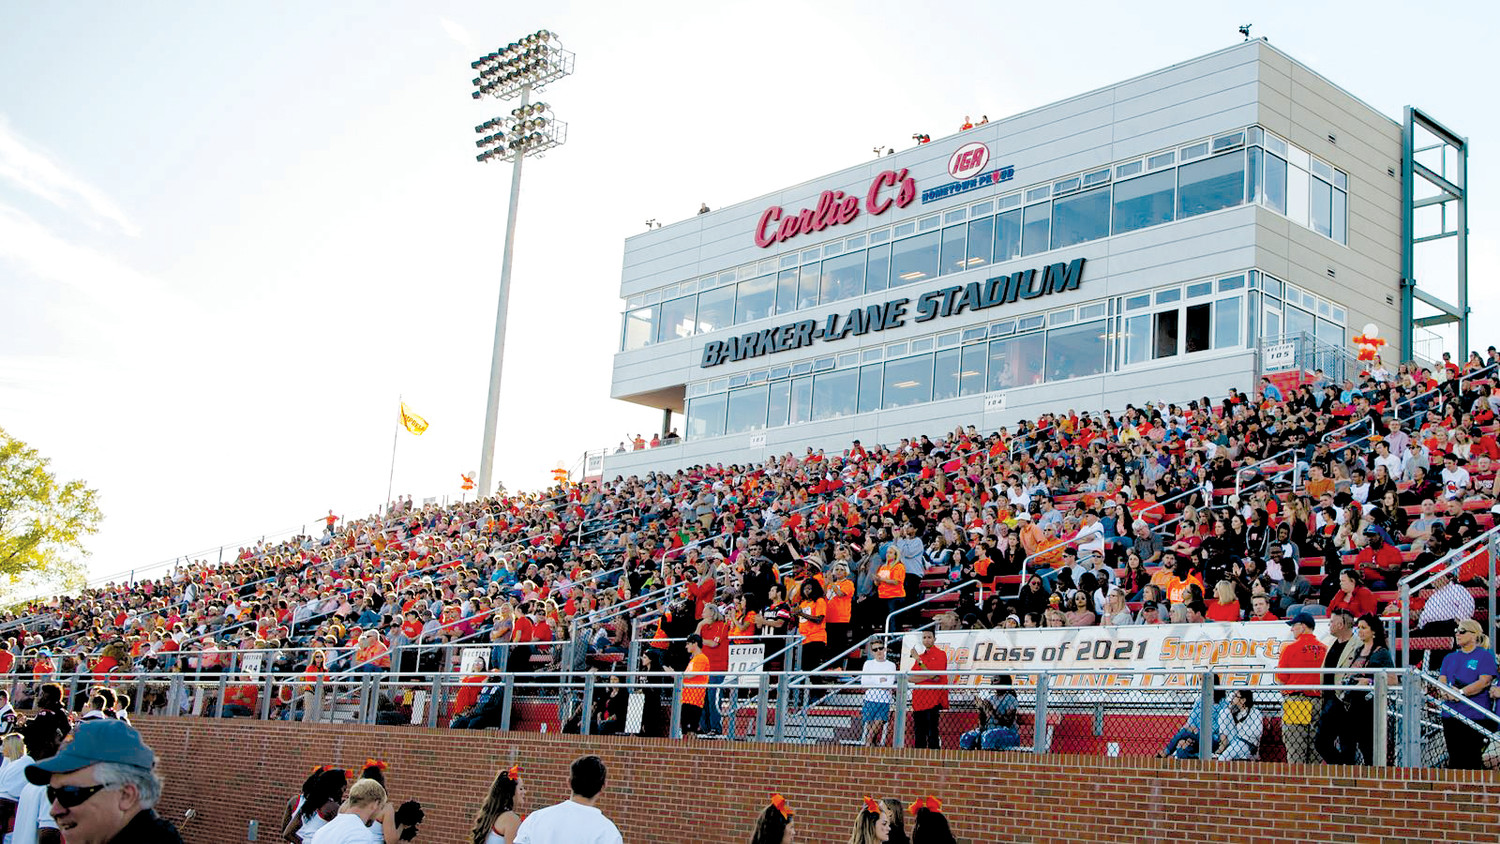 Campbell's football game against Coastal Carolina University has been rescheduled for today and moved to  Campbell's Barker-Lane Stadium in Buies Creek. Kickoff will be at 2 p.m. today.